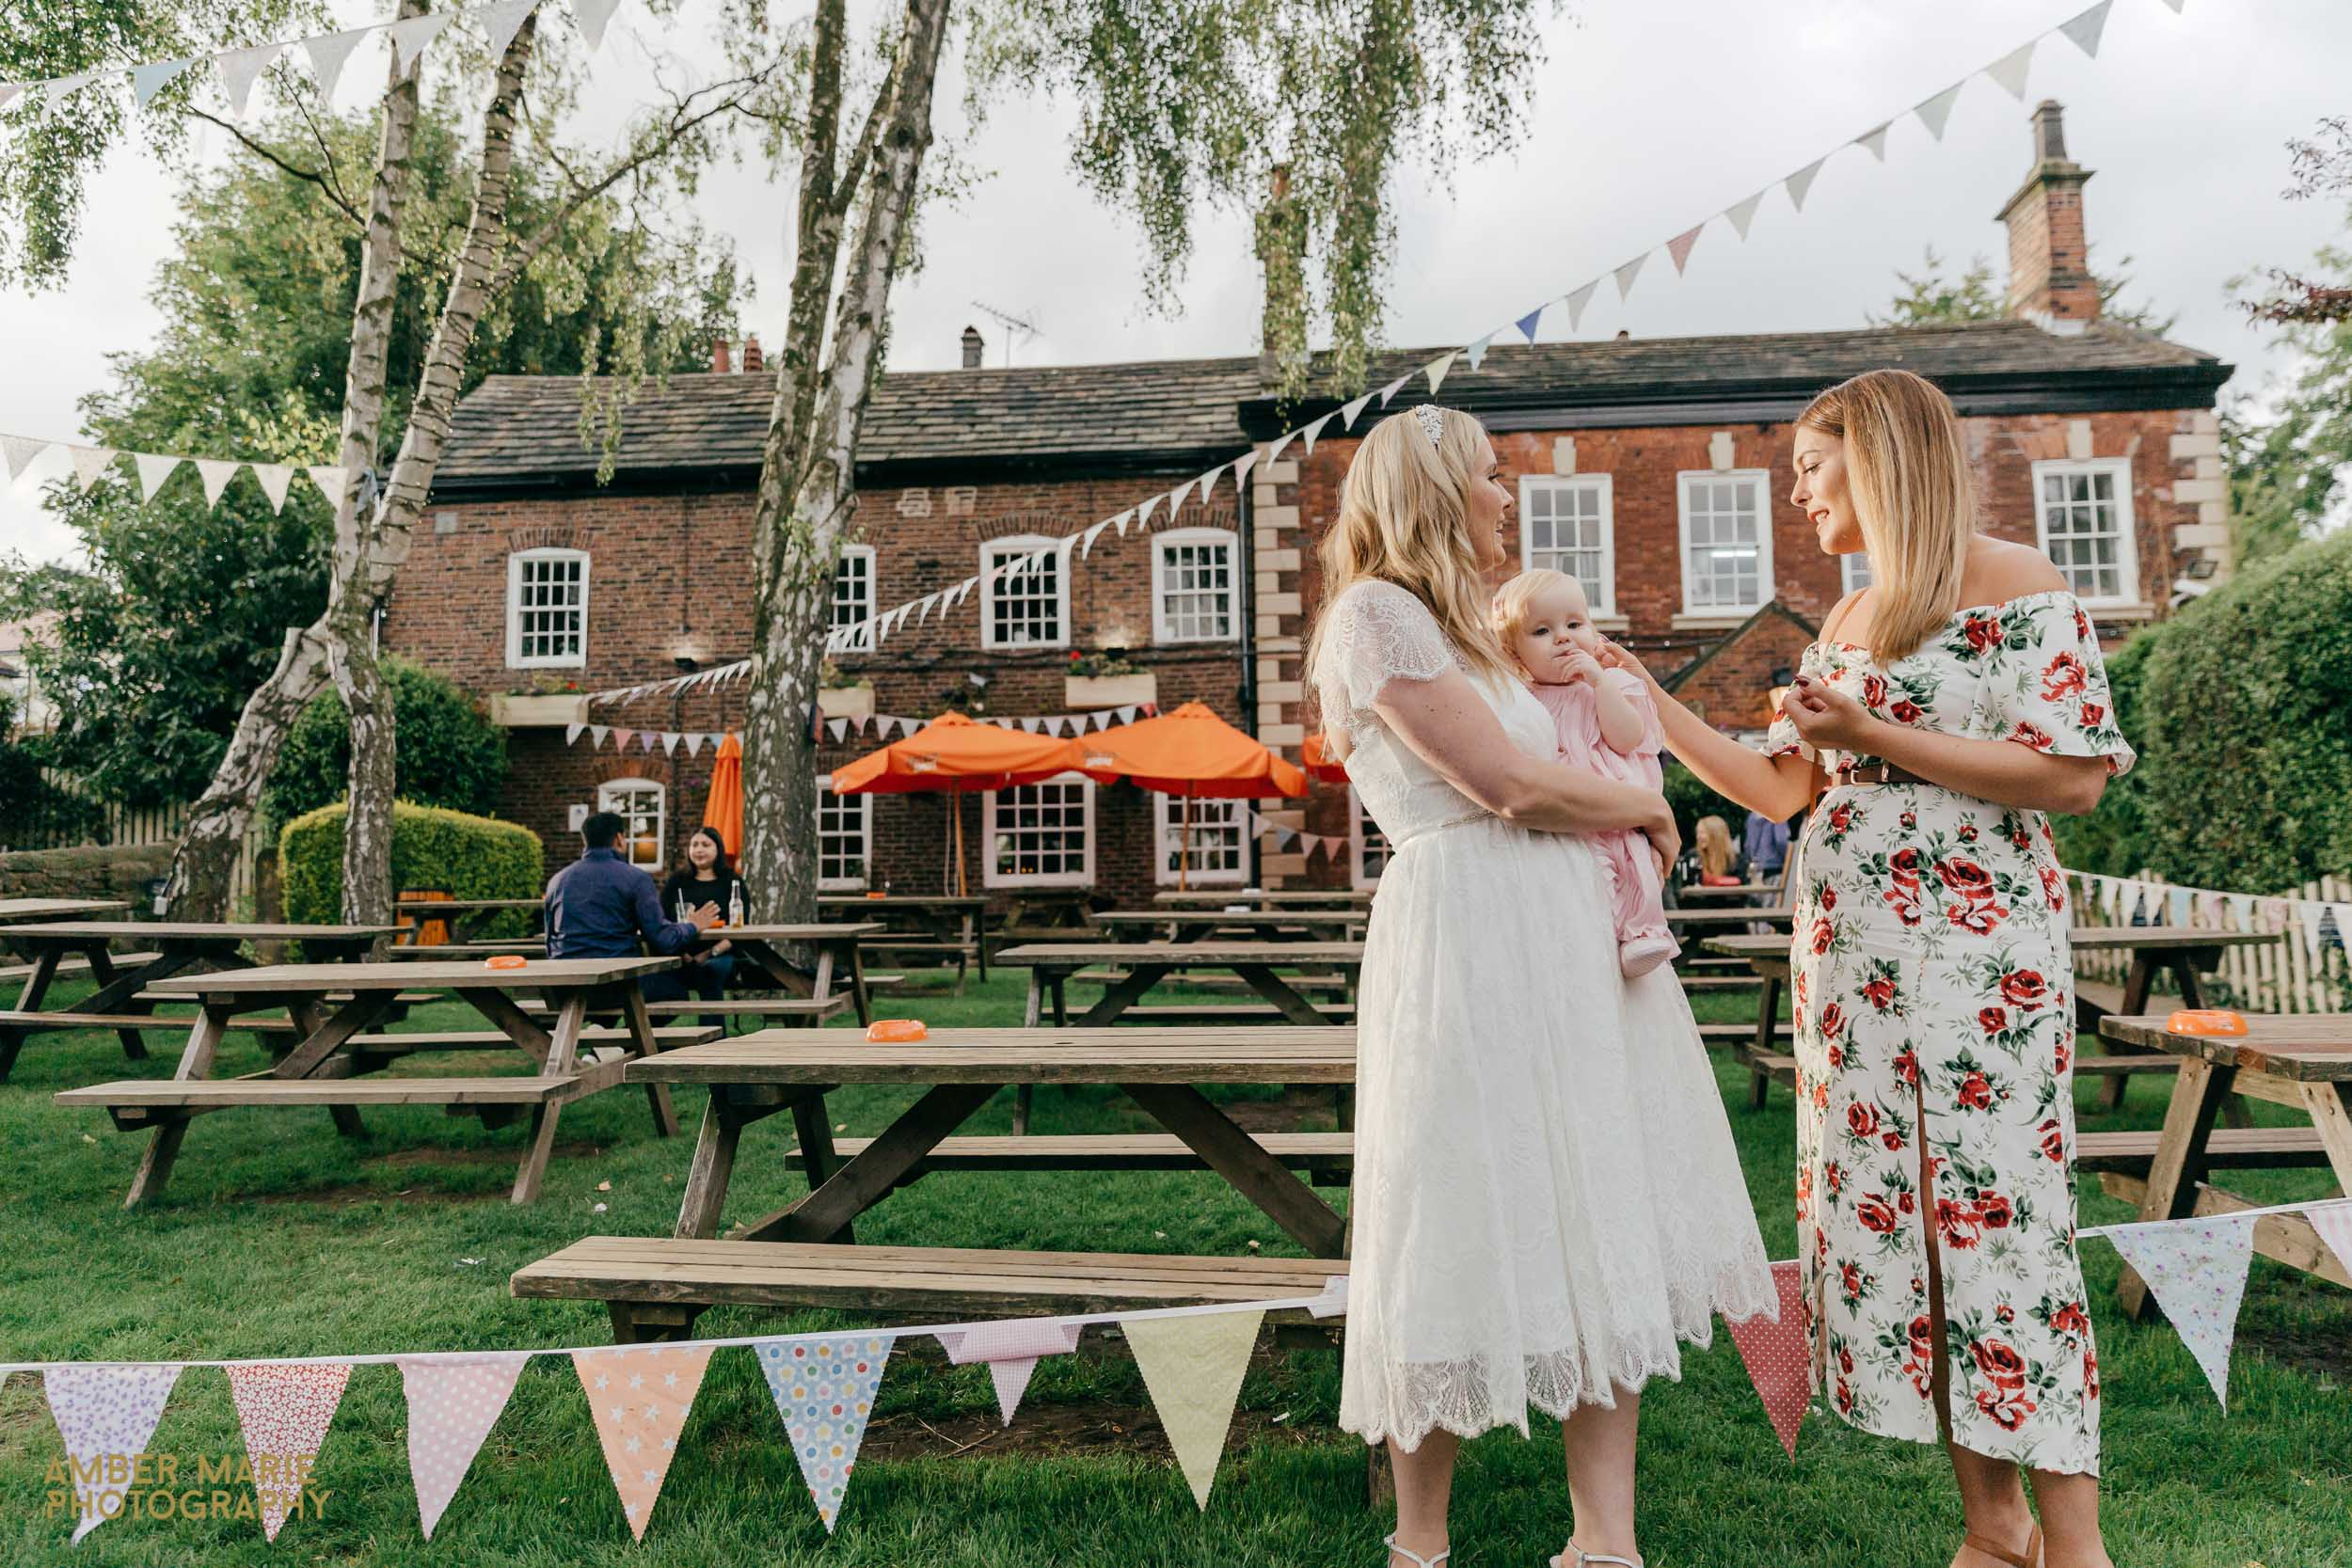 Mustard Pot Wedding by Gloucestershire Wedding Photographer